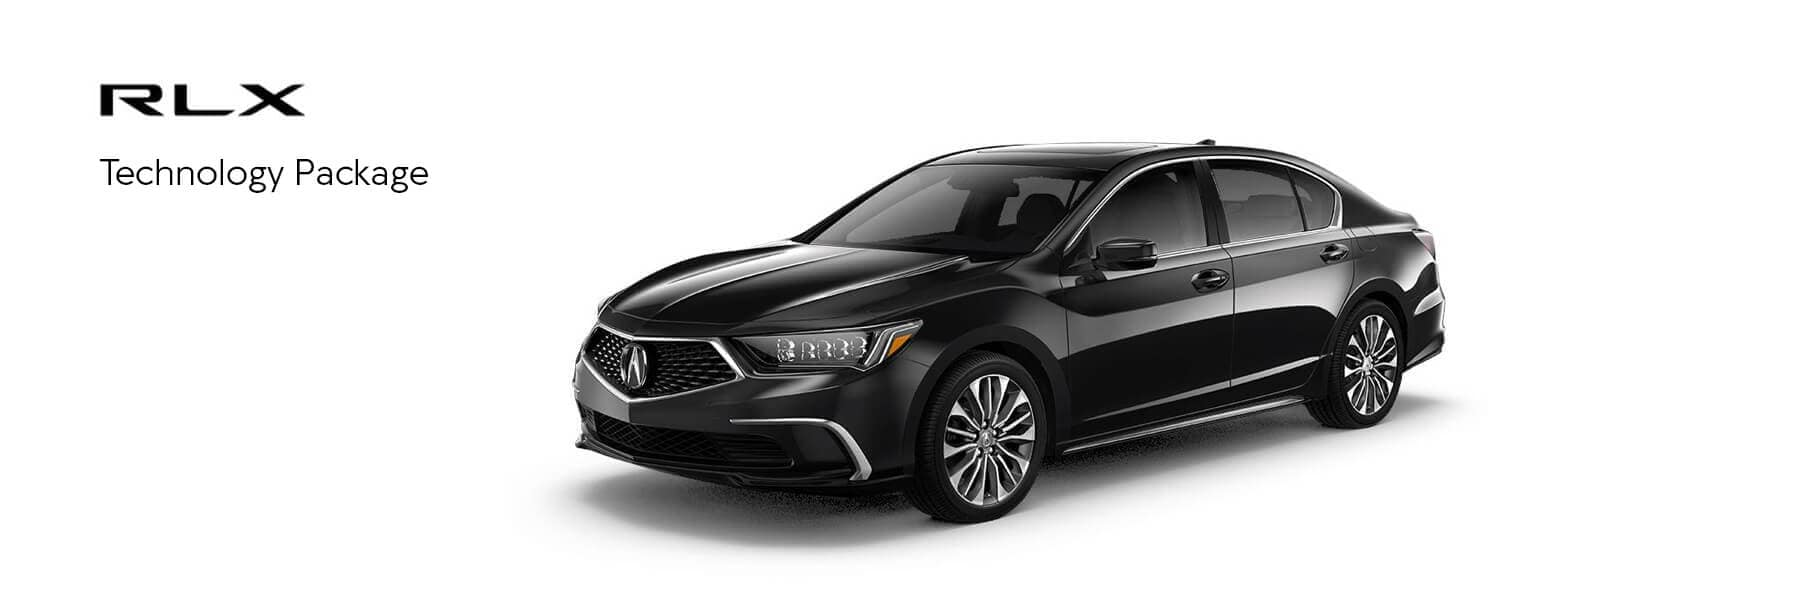 Acura RLX Technology Package Slider